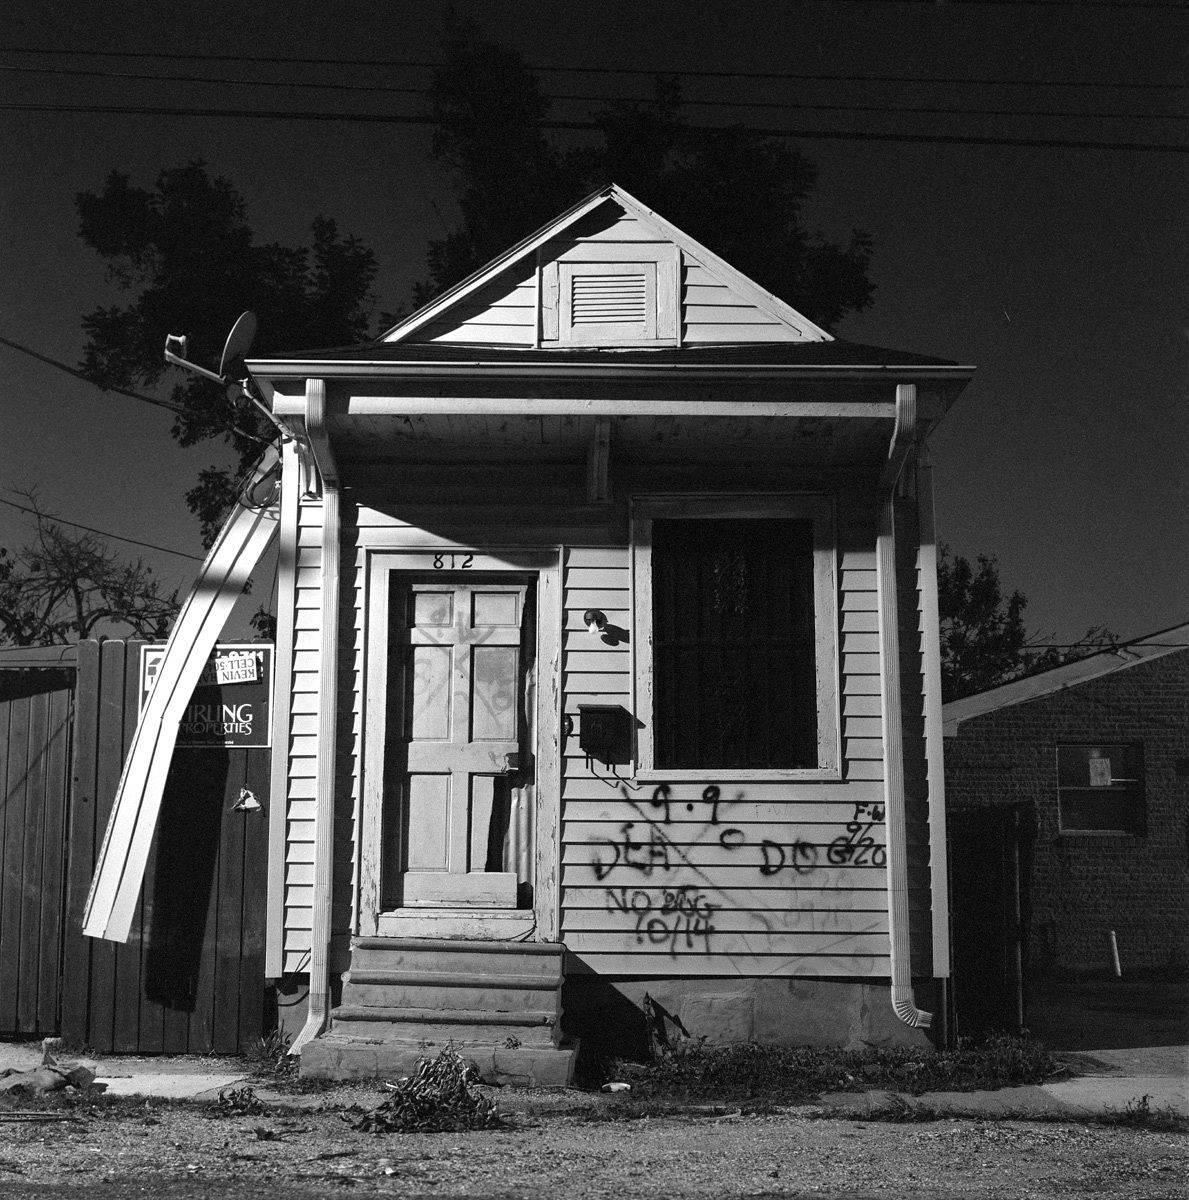 DOG, Lower Ninth Ward, 2006